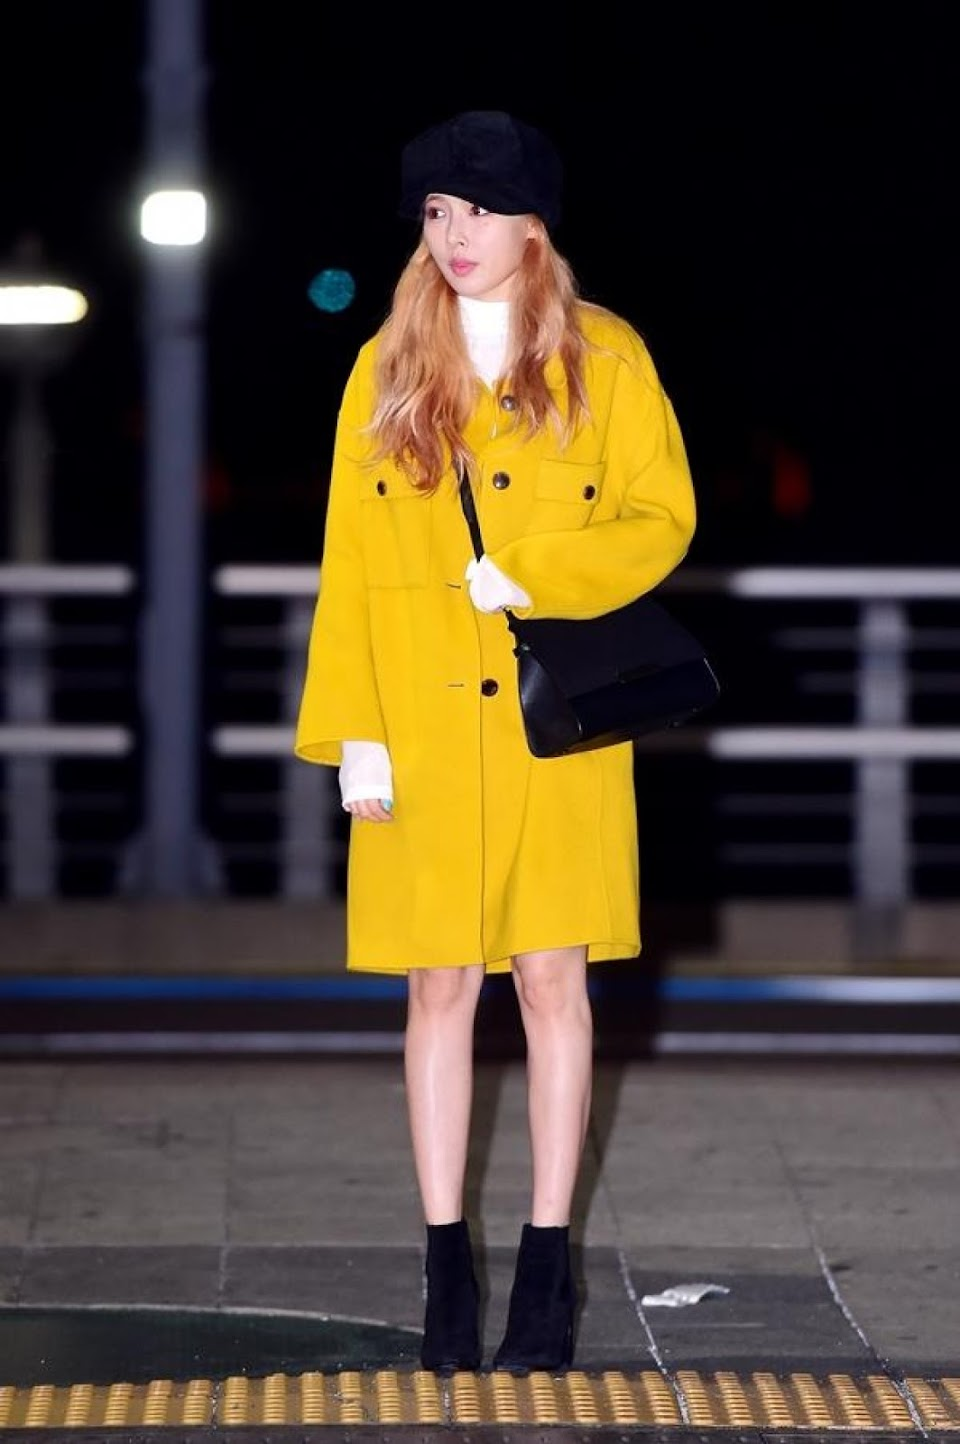 hyuna-yellow-coat